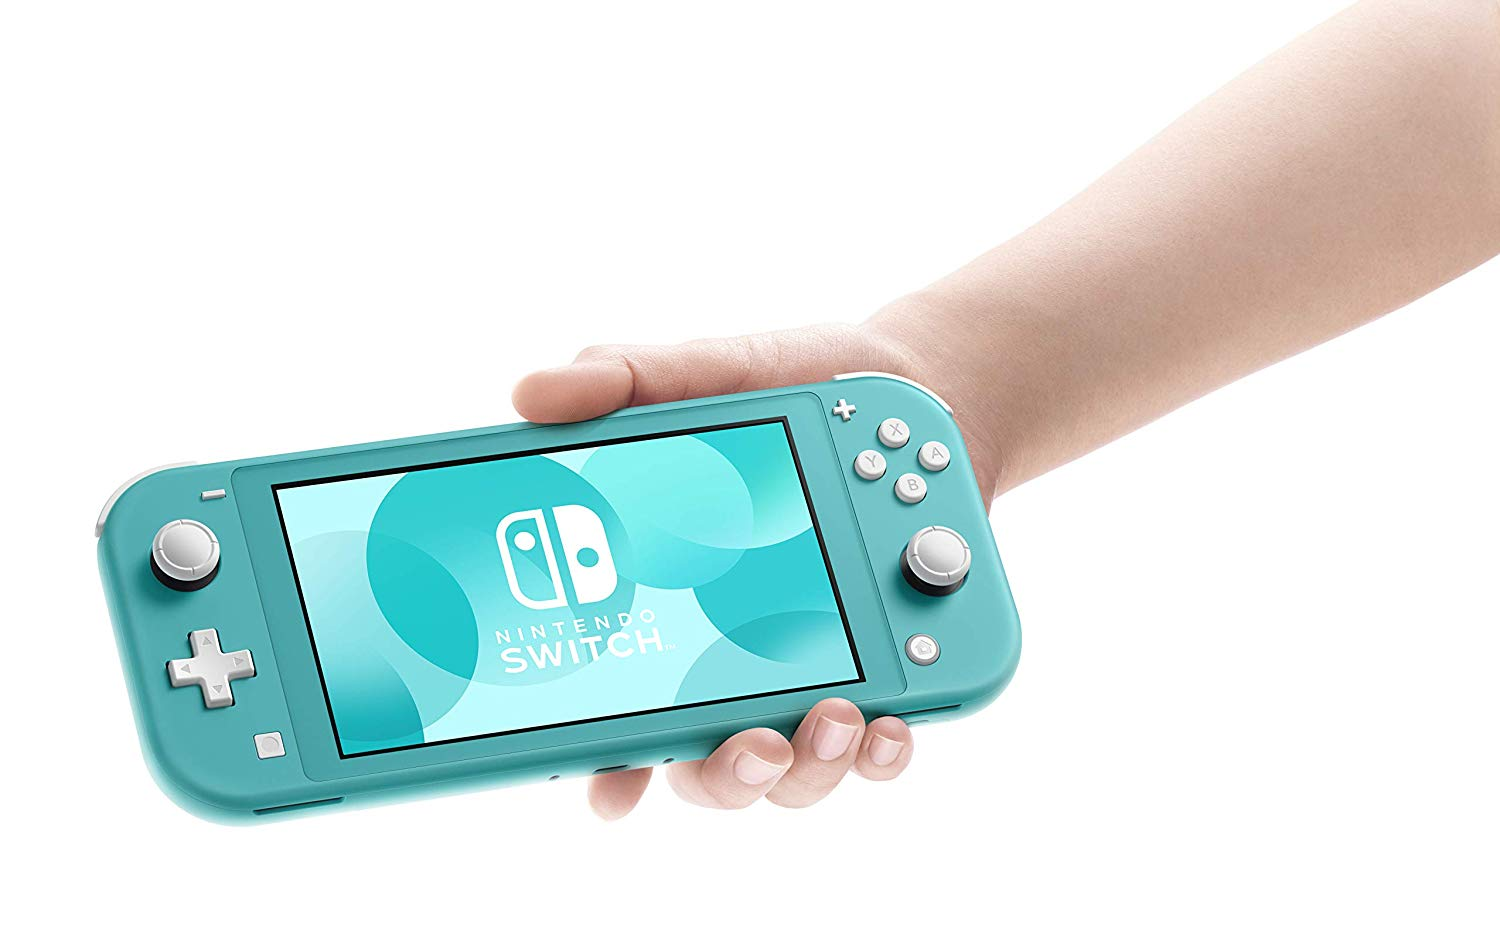 A person holding a turquoise Nintendo Switch Lite.